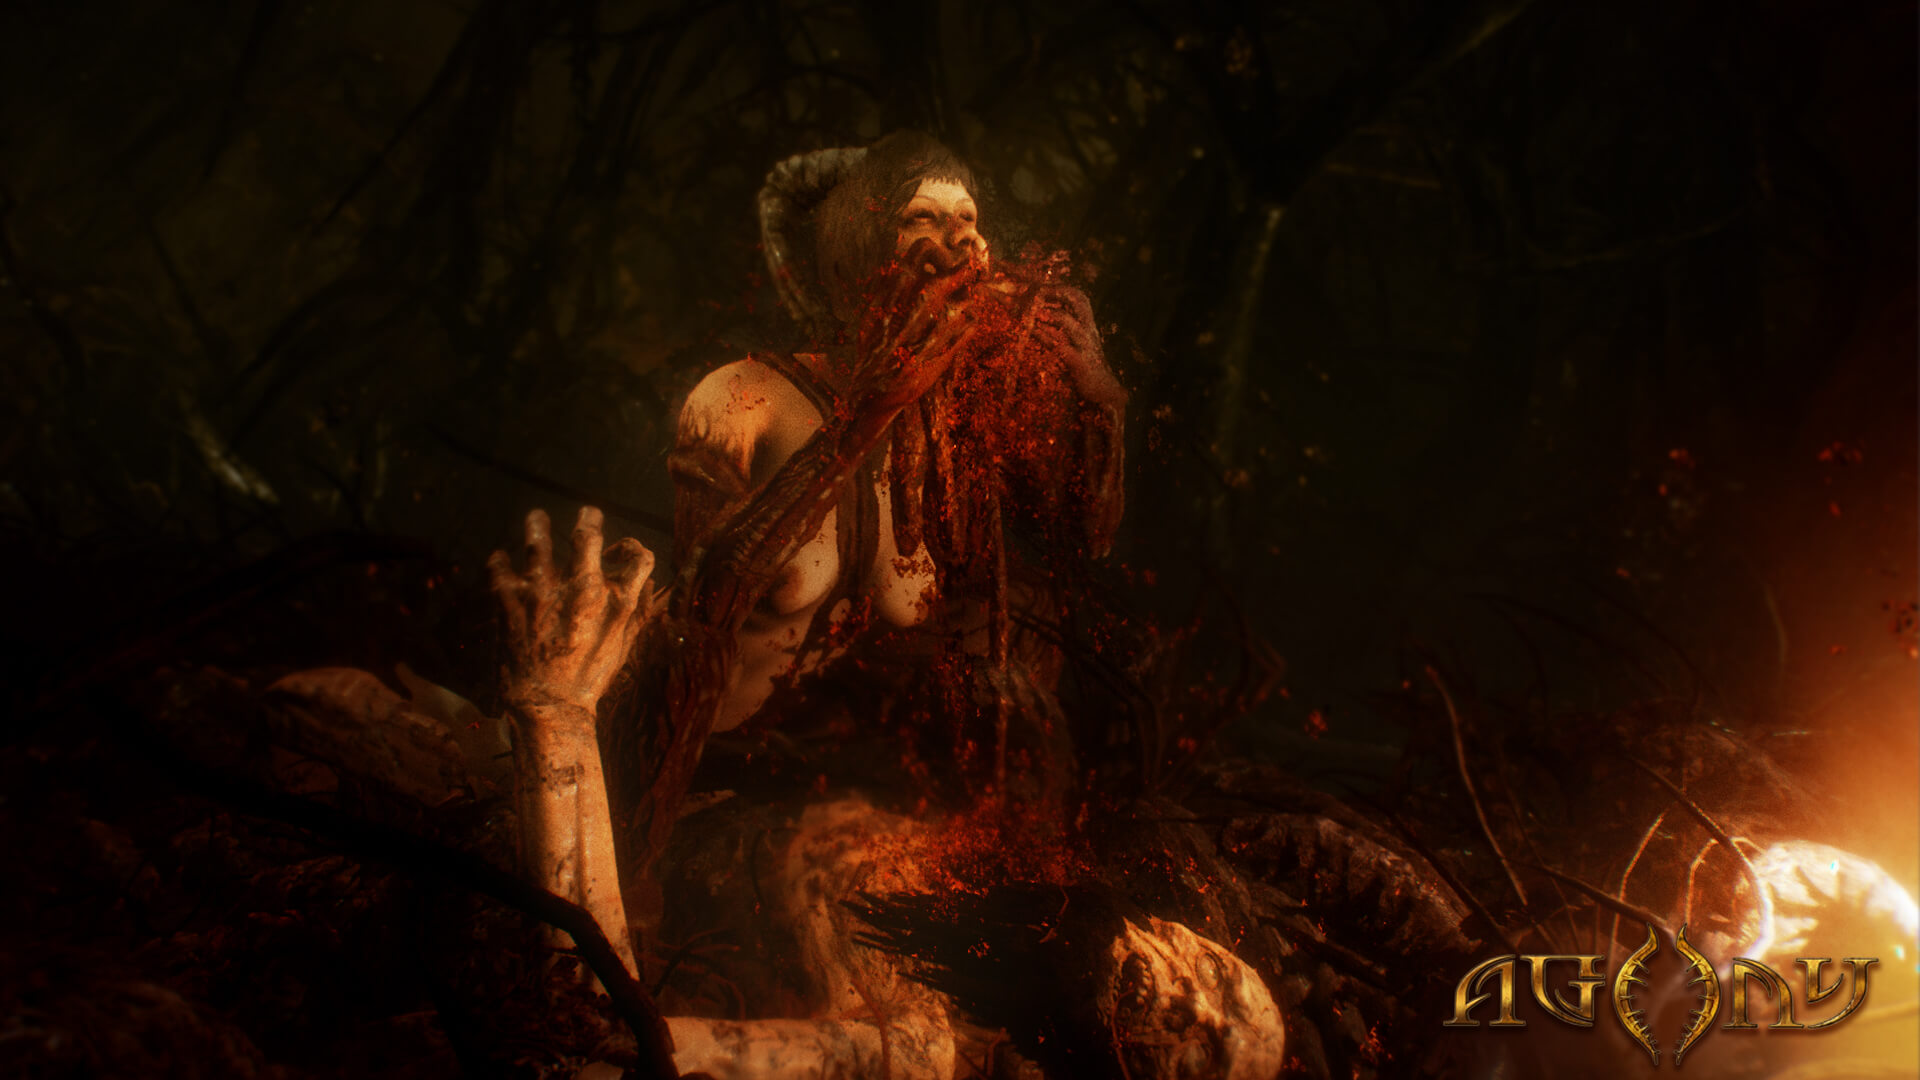 agony hell game13 1 - New Agony Trailers Deliver The Pain